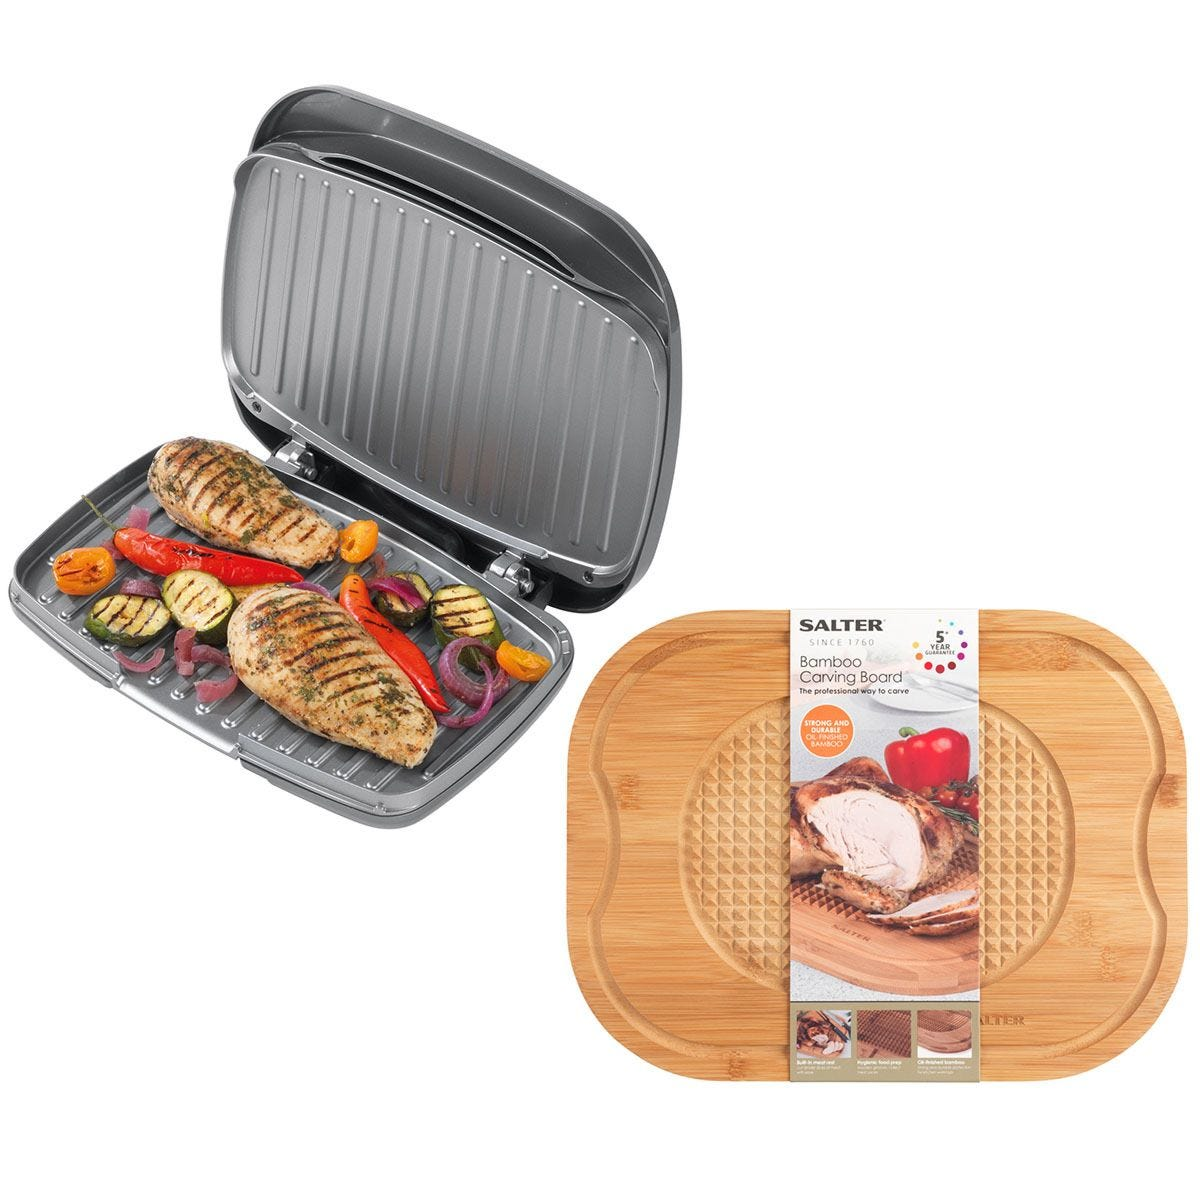 Salter COMBO-7113 1000W Cosmos Health Grill with Bamboo Carving Board - Grey